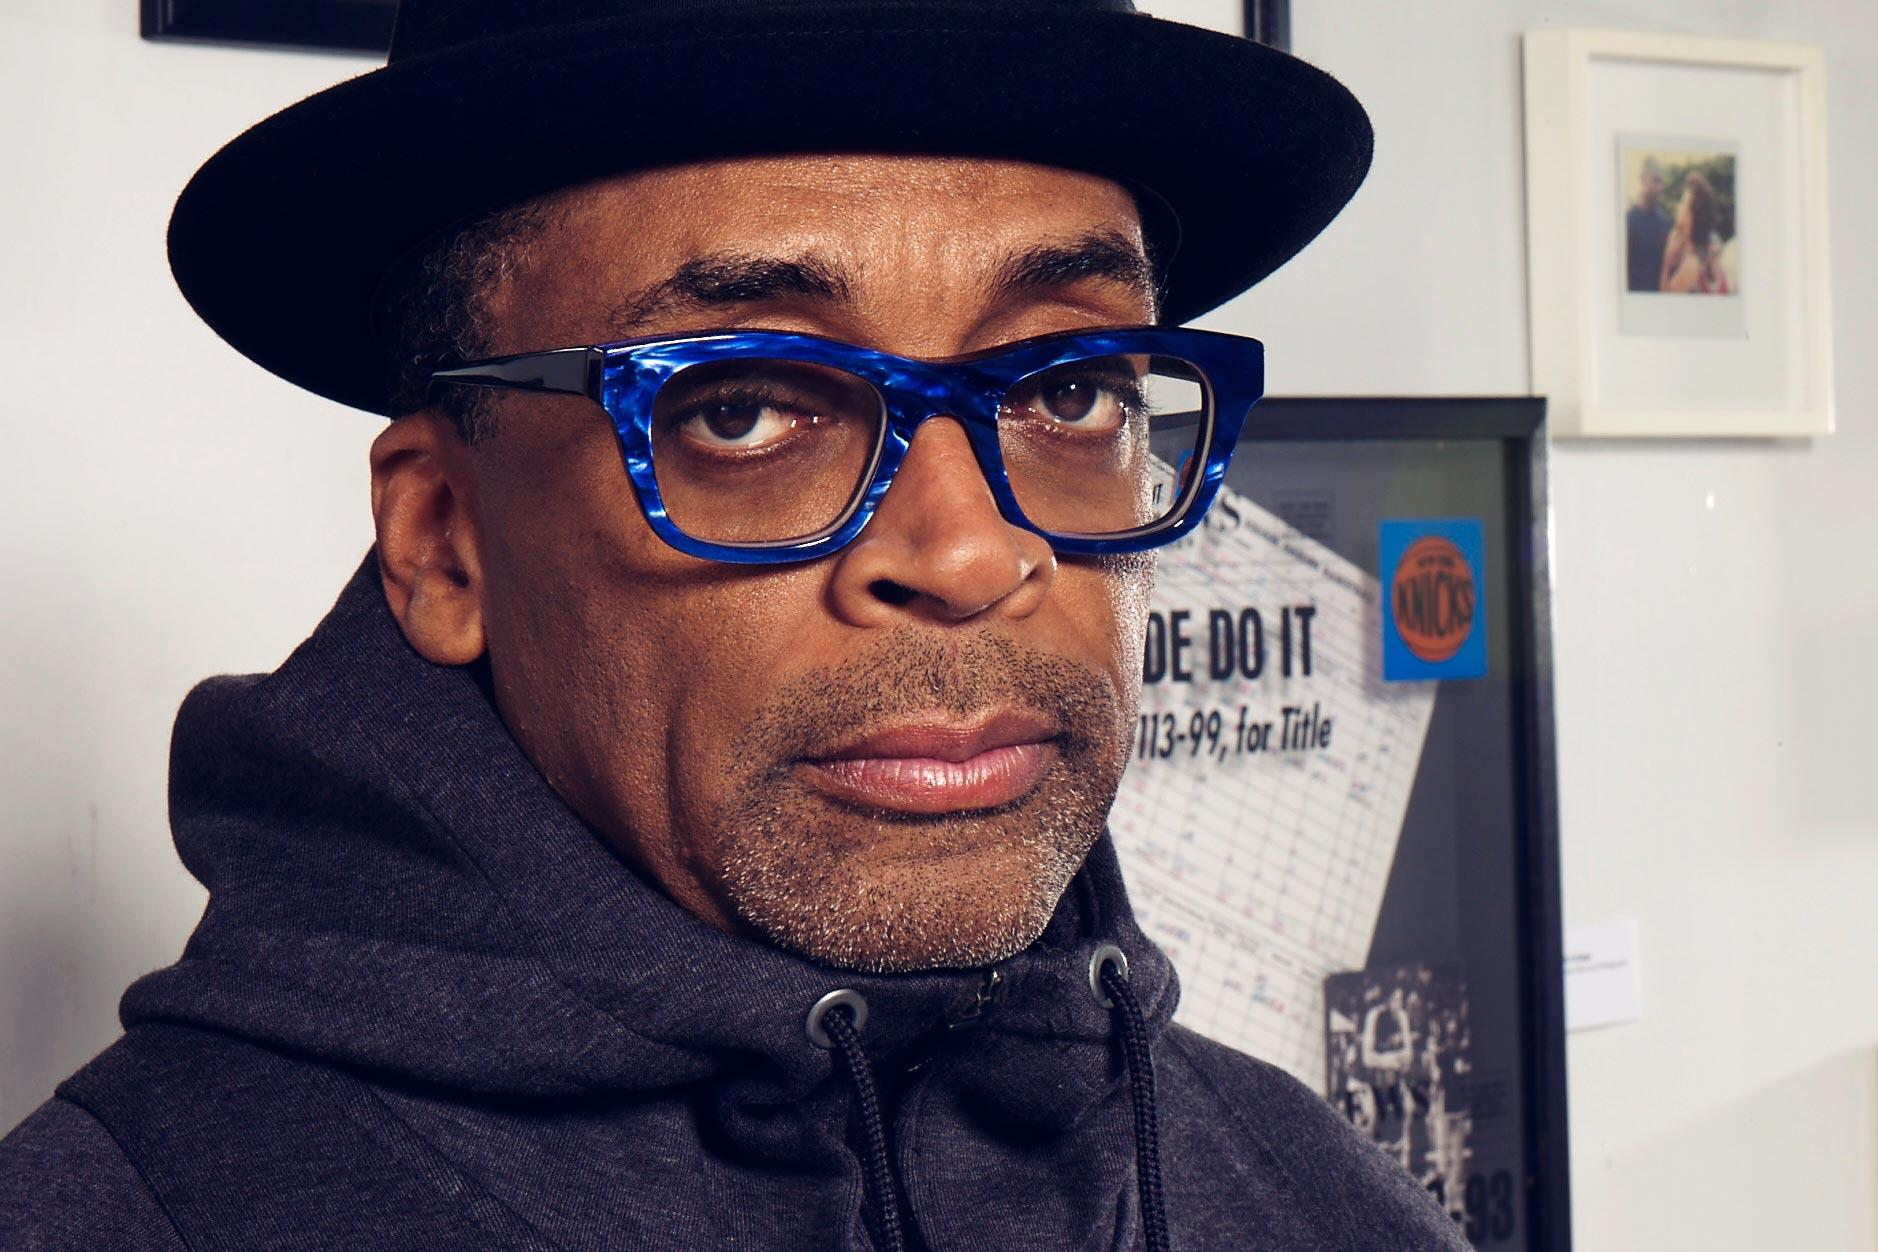 Acclaimed filmmaker Spike Lee is among the special guests heading to Charlottesville this weekend.